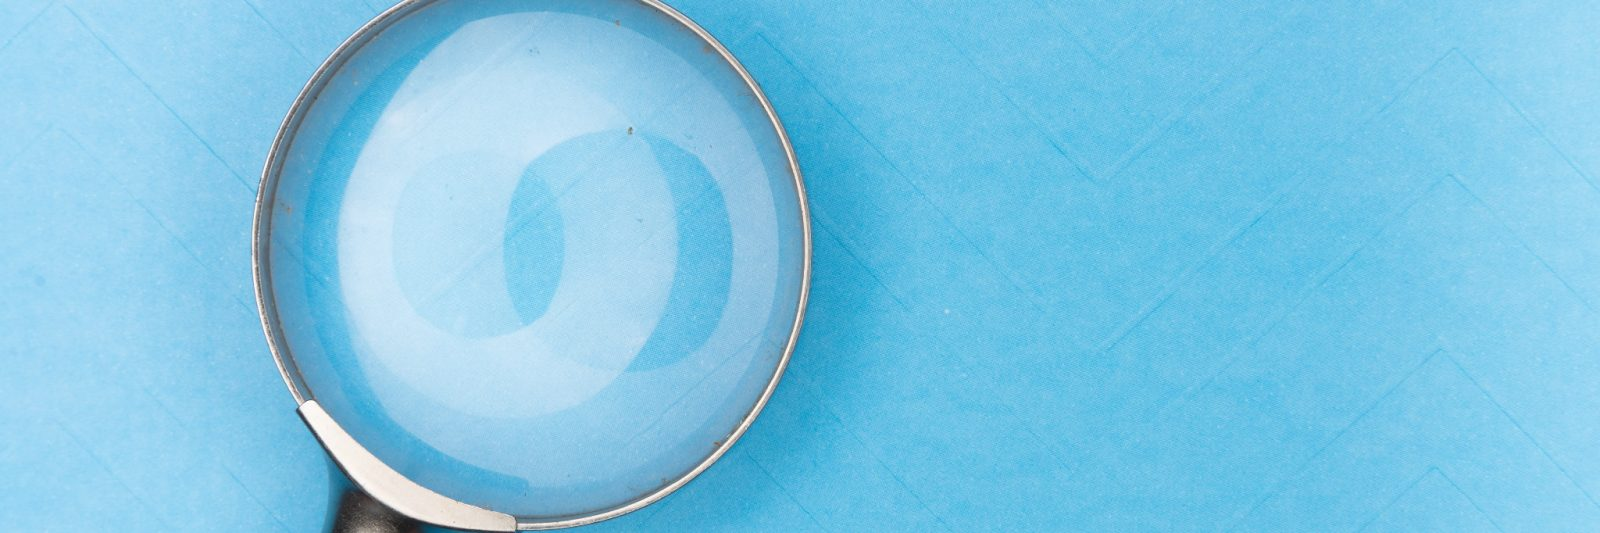 Search - magnifying glass